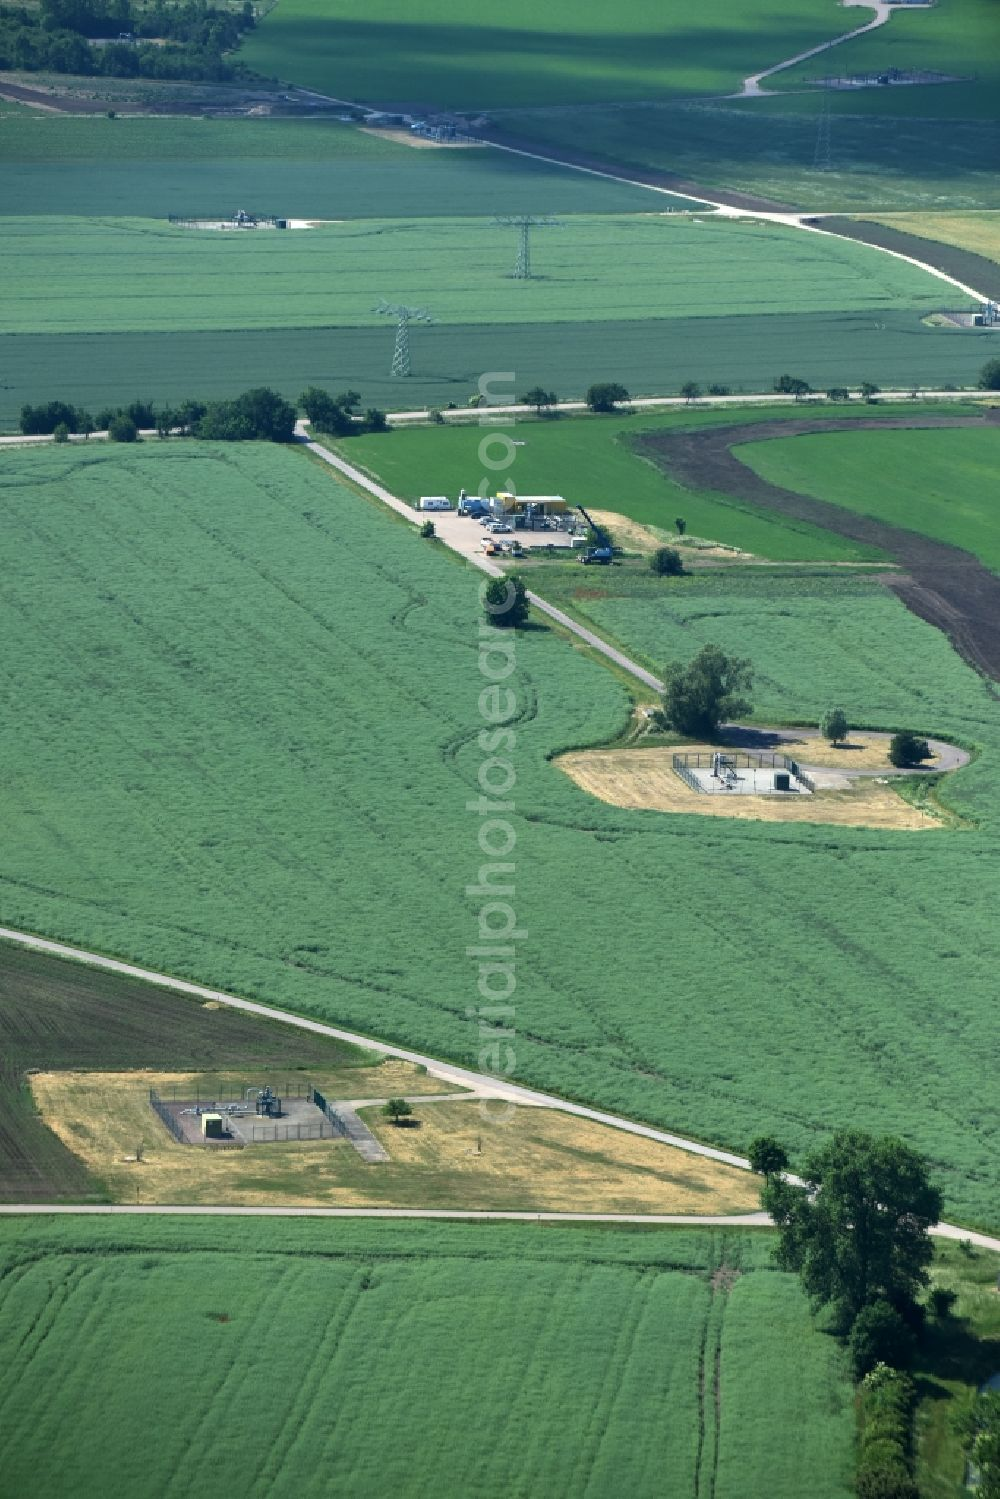 Aerial image Peißen - Structures of a field landscape near Peissen in the state Saxony-Anhalt